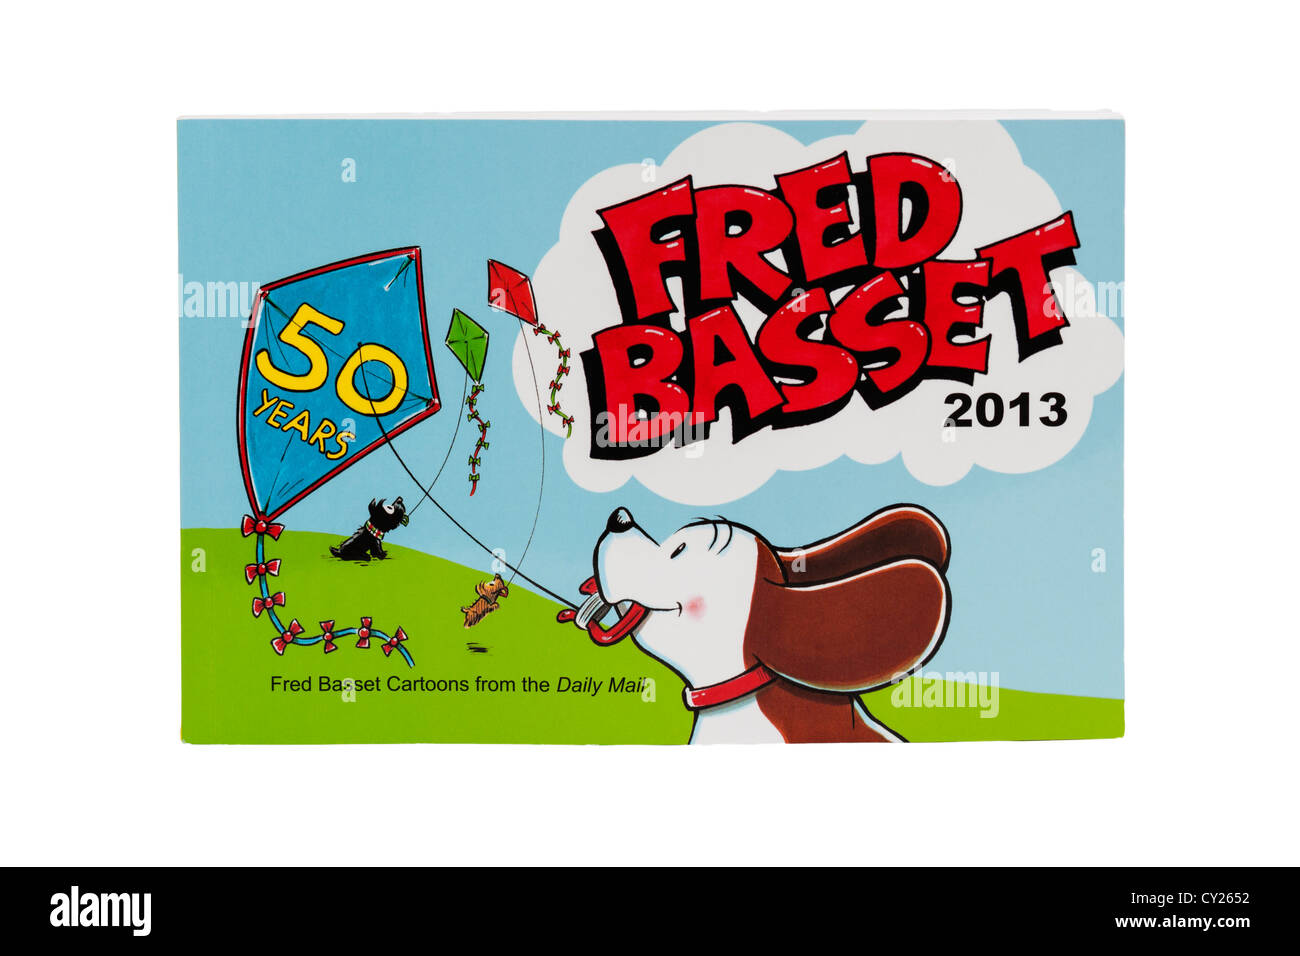 A 2013 Fred Basset book celebrating 50 years of Fred Basset cartoons on a white background - Stock Image